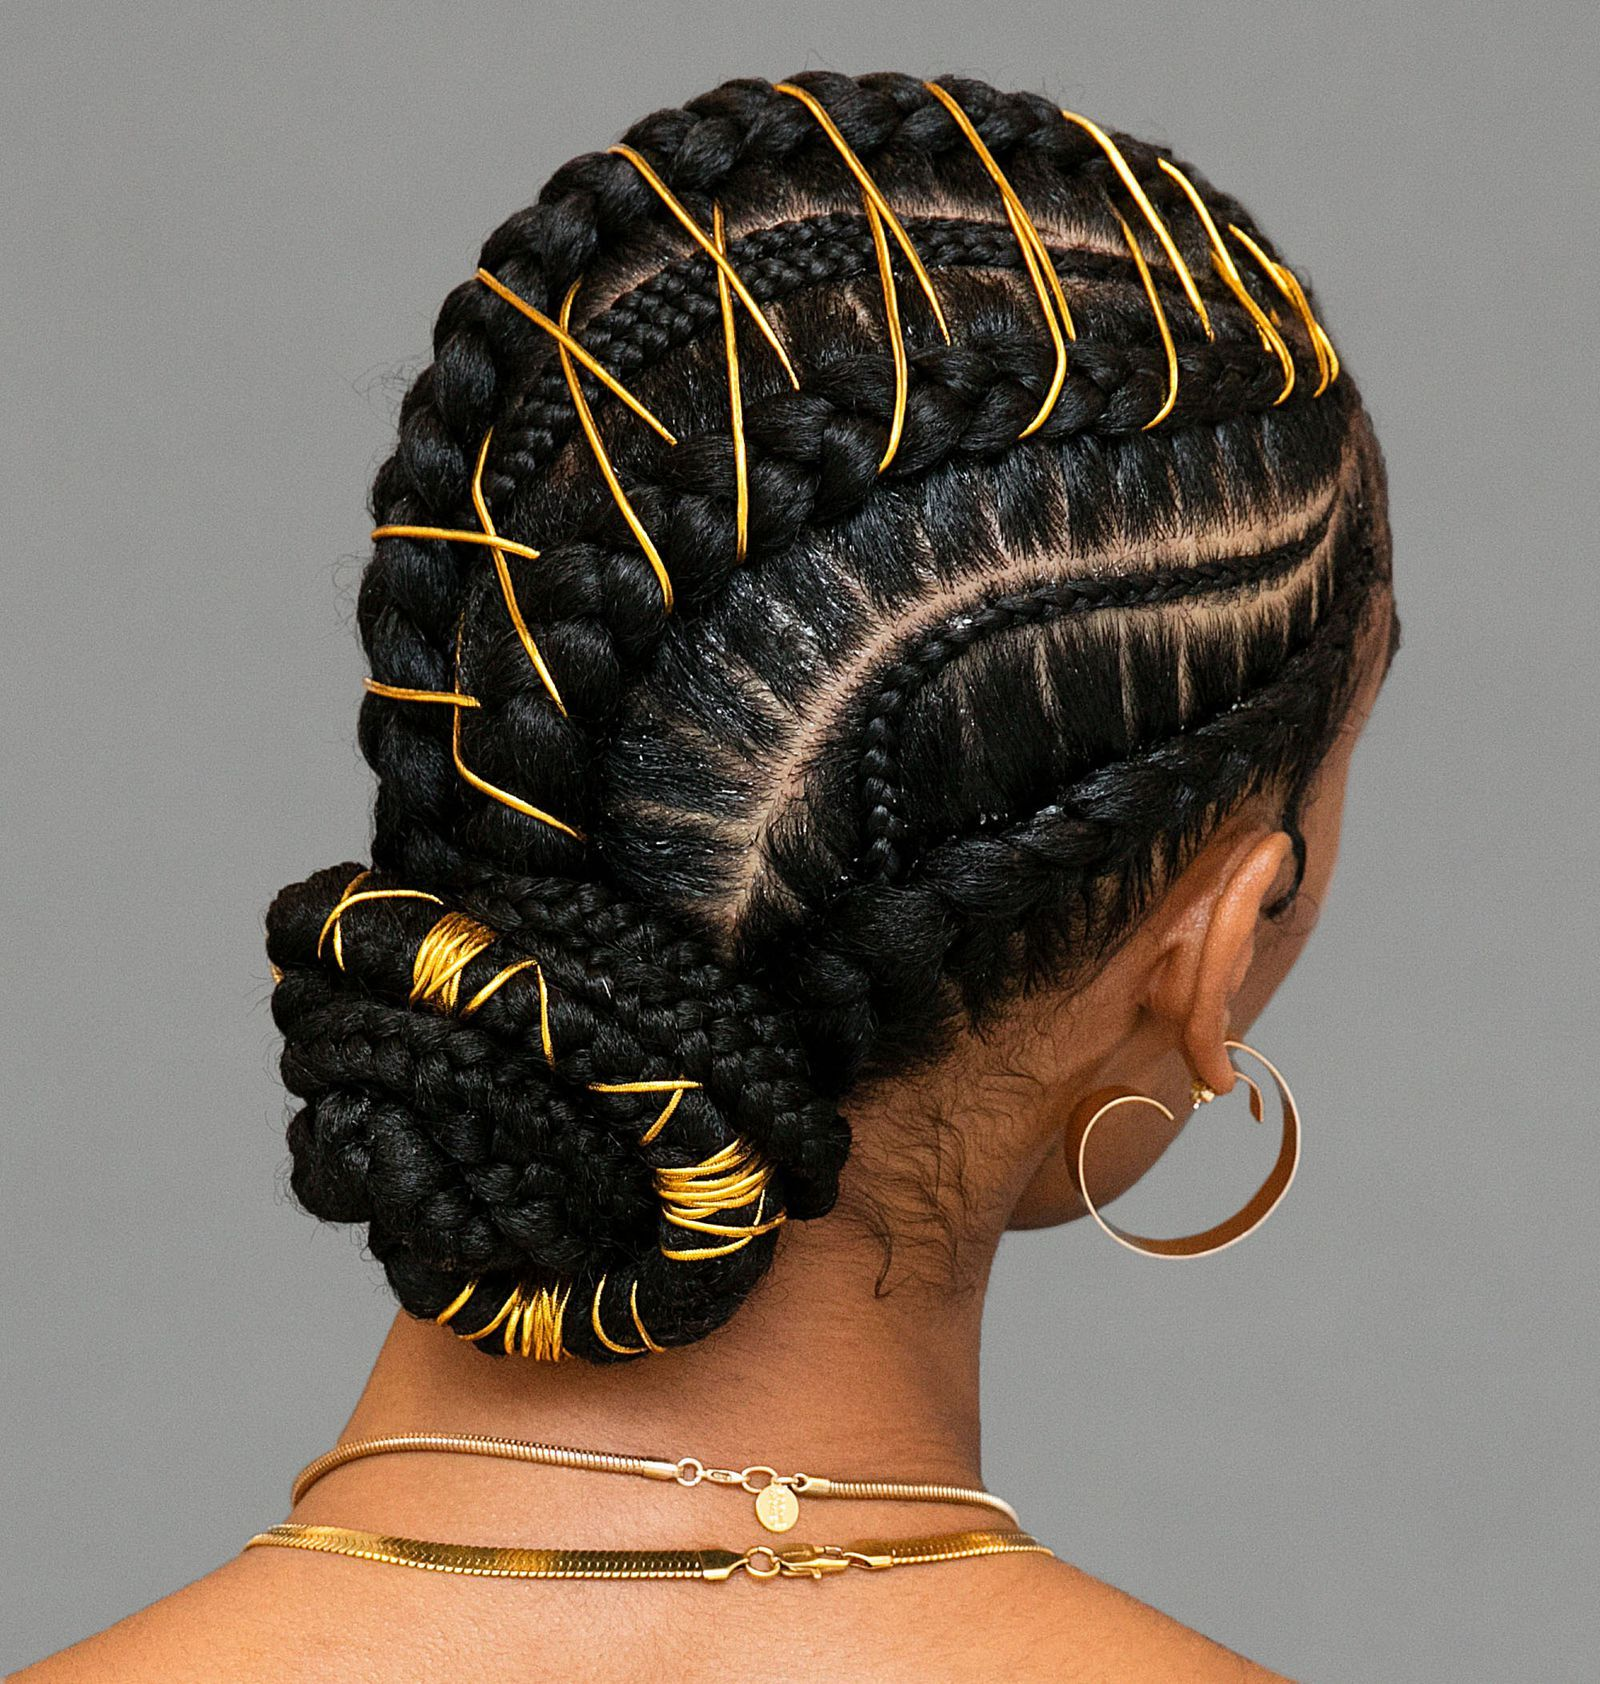 Um This Braided Bun With Gold Stitching Is Definitely The Next